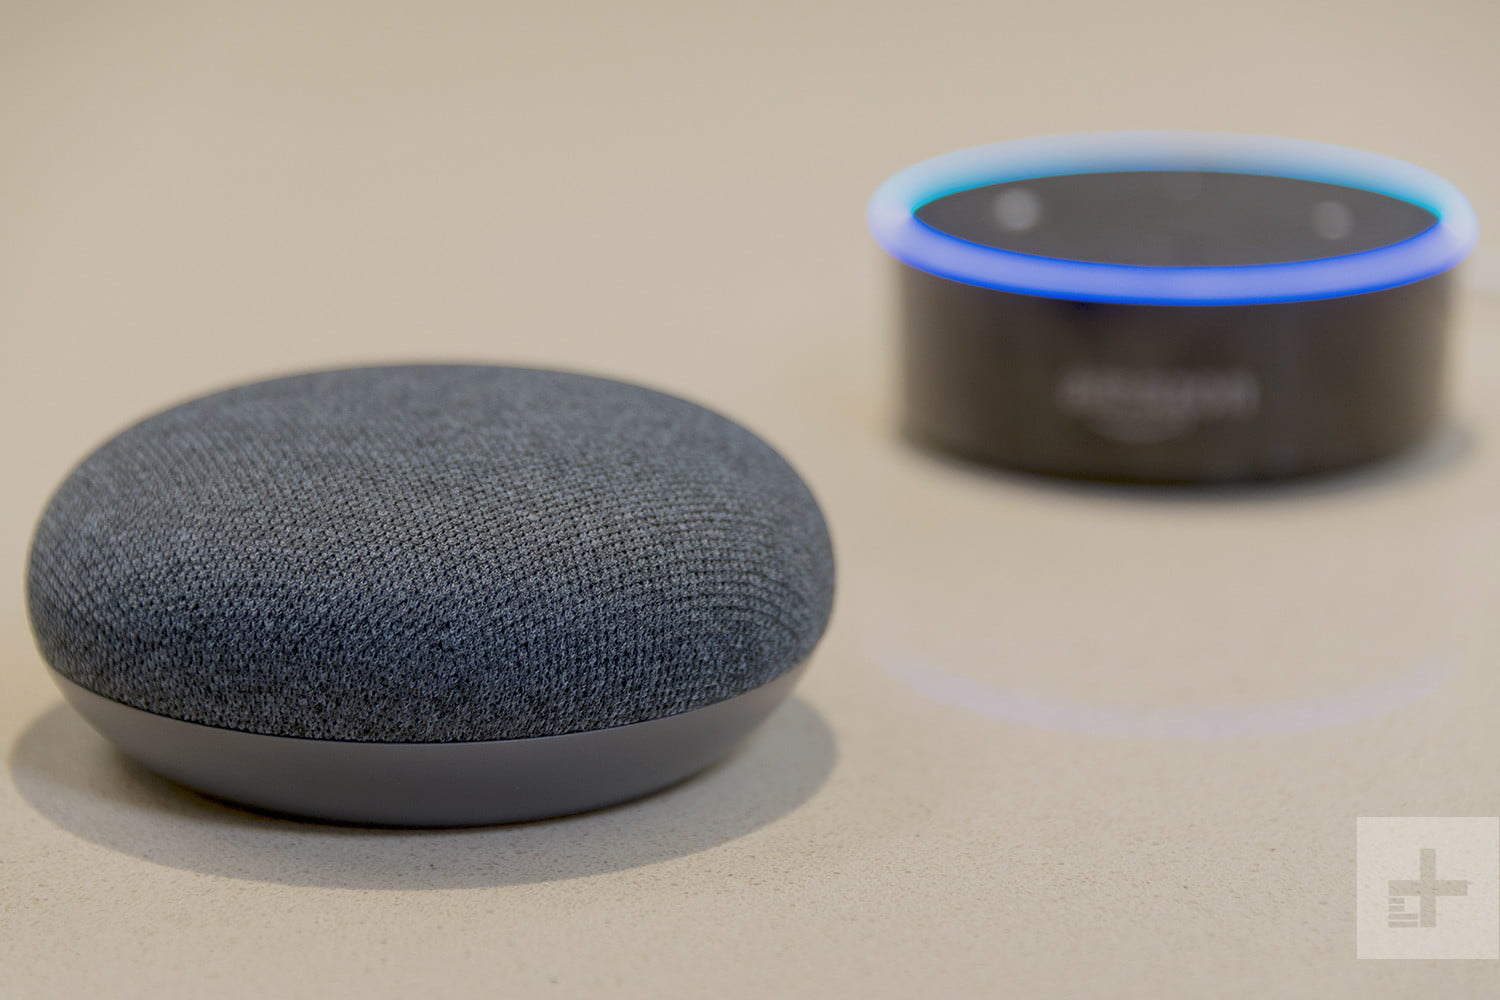 Alexa Dot Google Assistant Vs Amazon Alexa How Do They Compare Digital